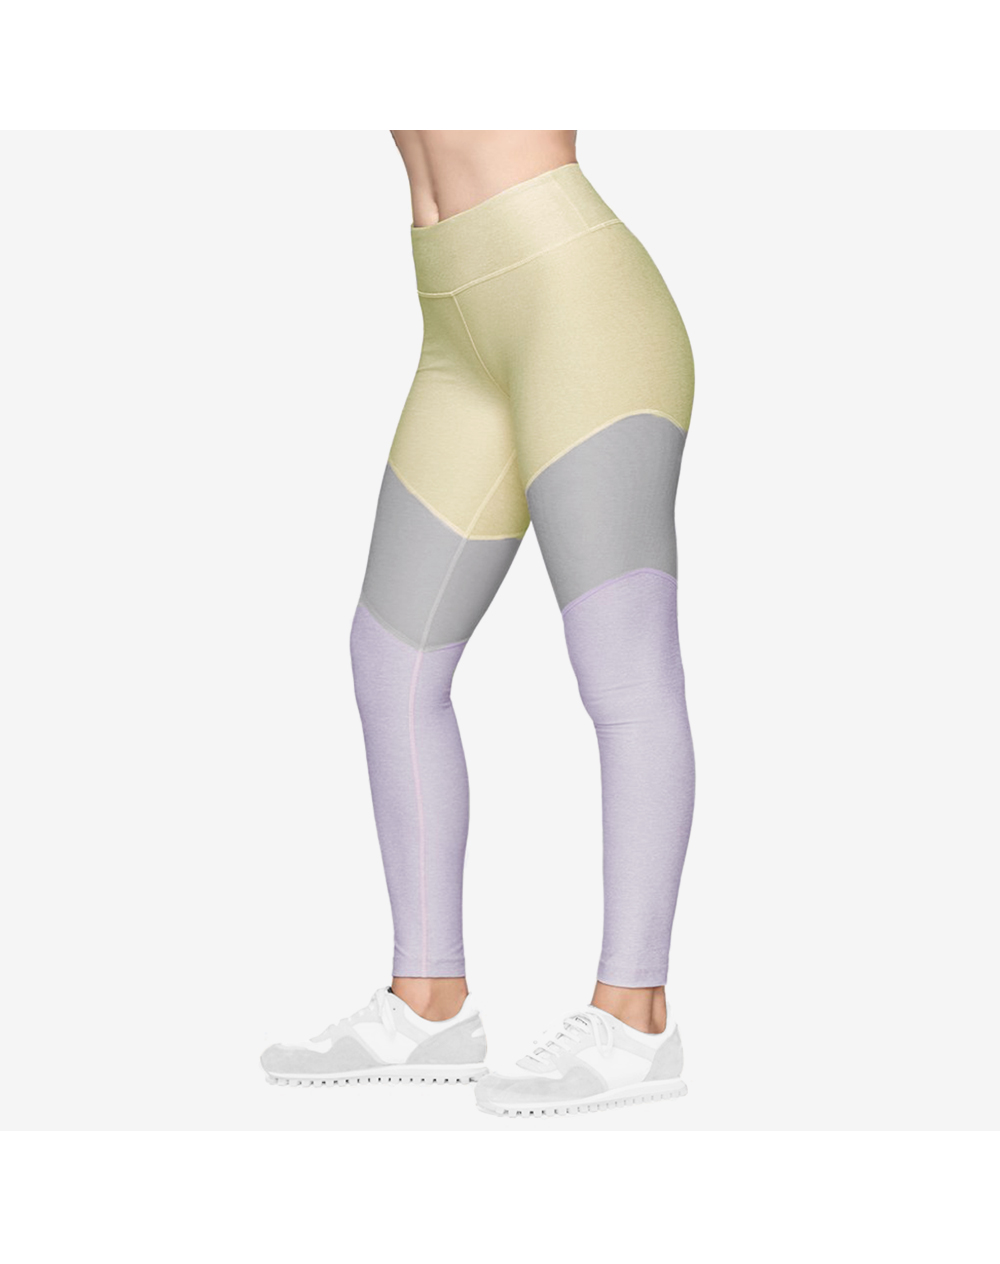 7/8 Springs Legging in Dandelion/Concrete/Wisteria by Outdoor Voices |